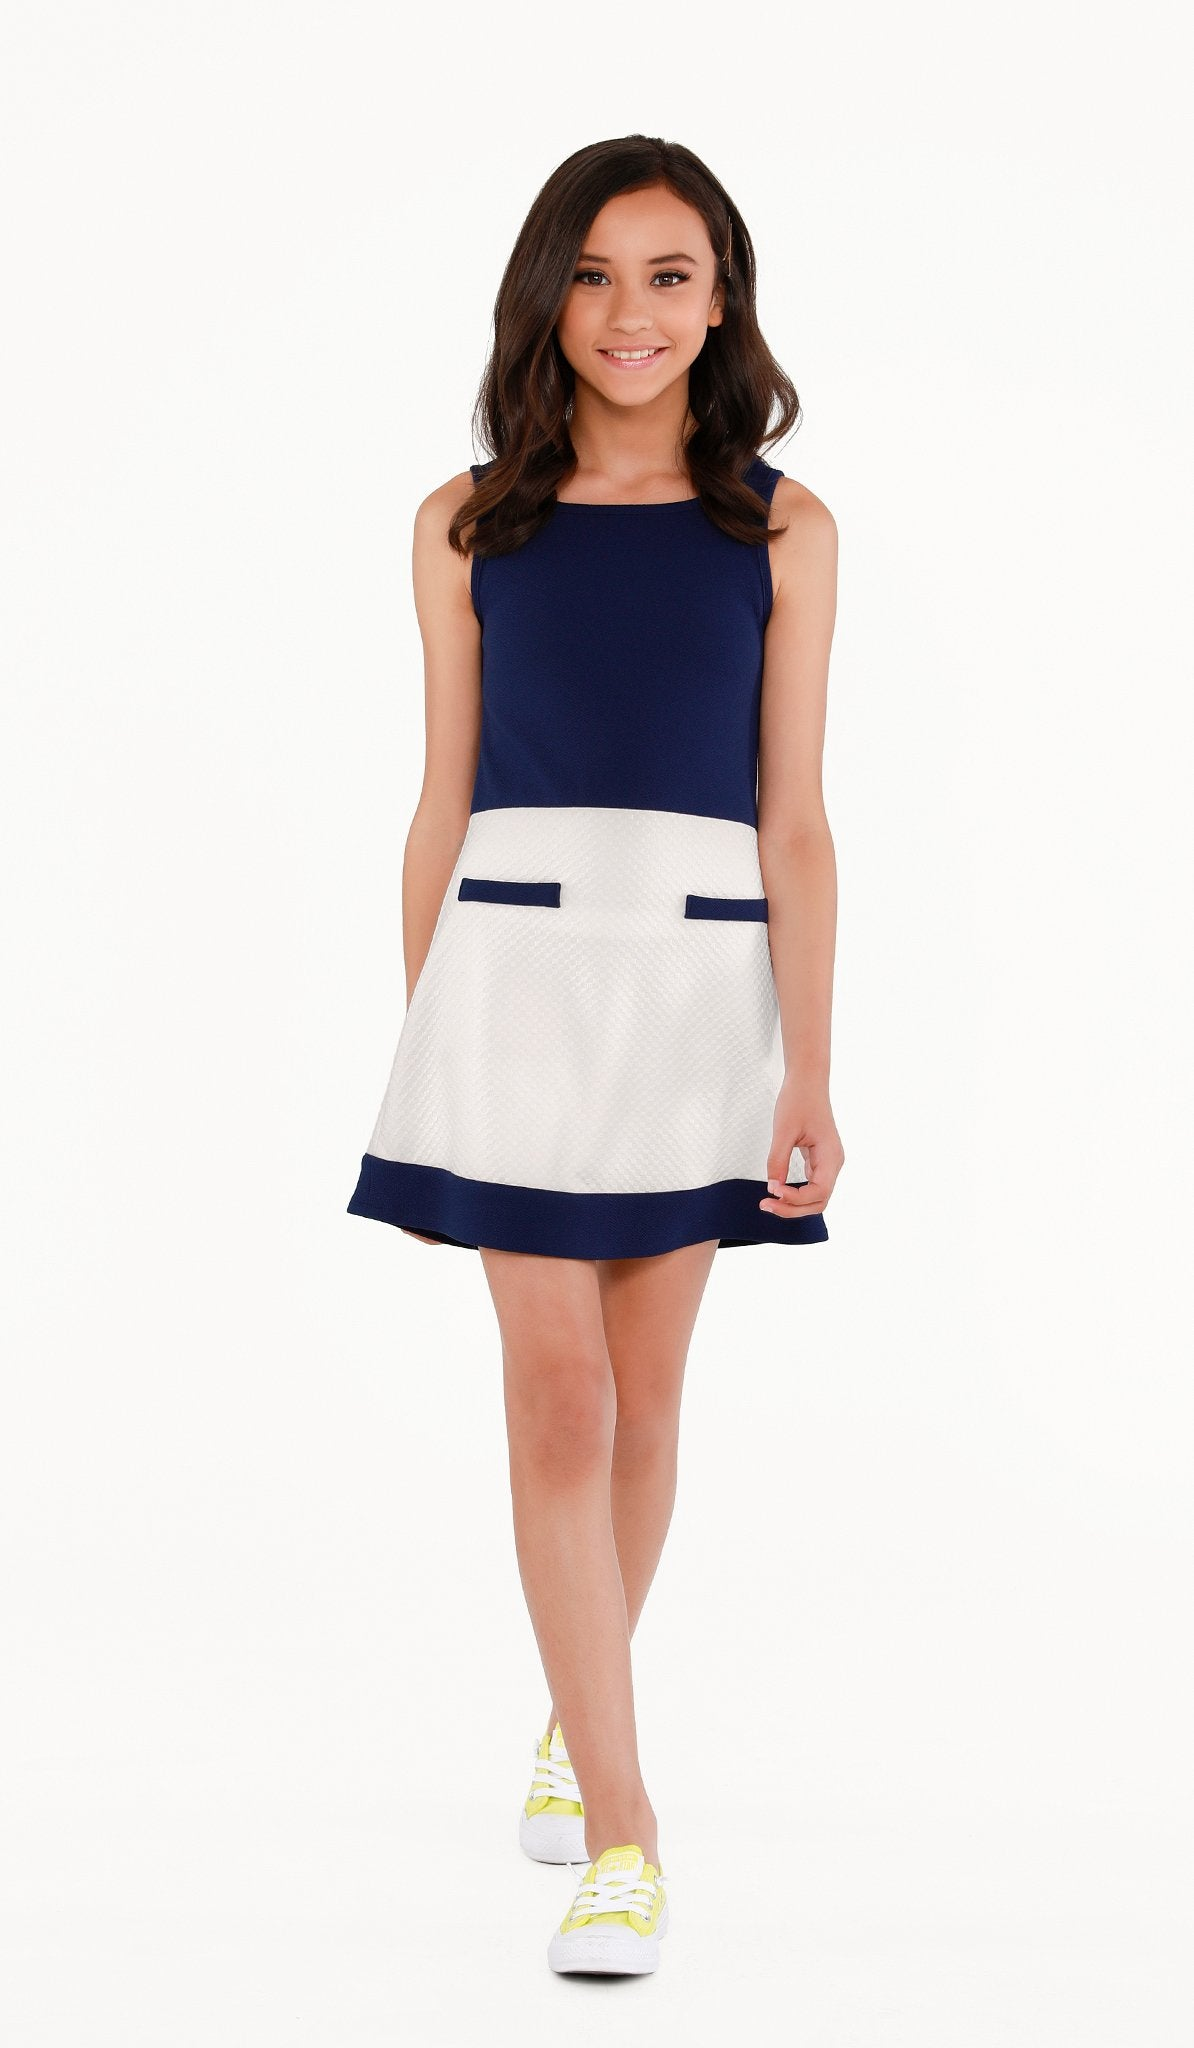 The Sally Miller Coco Dress - Navy and ivory color block mix texture stretch knit A-line dress with mock pockets  | Event & Party Dresses for Tween Girls & Juniors | Weddings Dresses, Bat Mitzvah Dresses, Sweet Sixteen Dresses, Graduation Dresses, Birthday Party Dresses, Bar Mitzvah Dresses, Cotillion Dresses